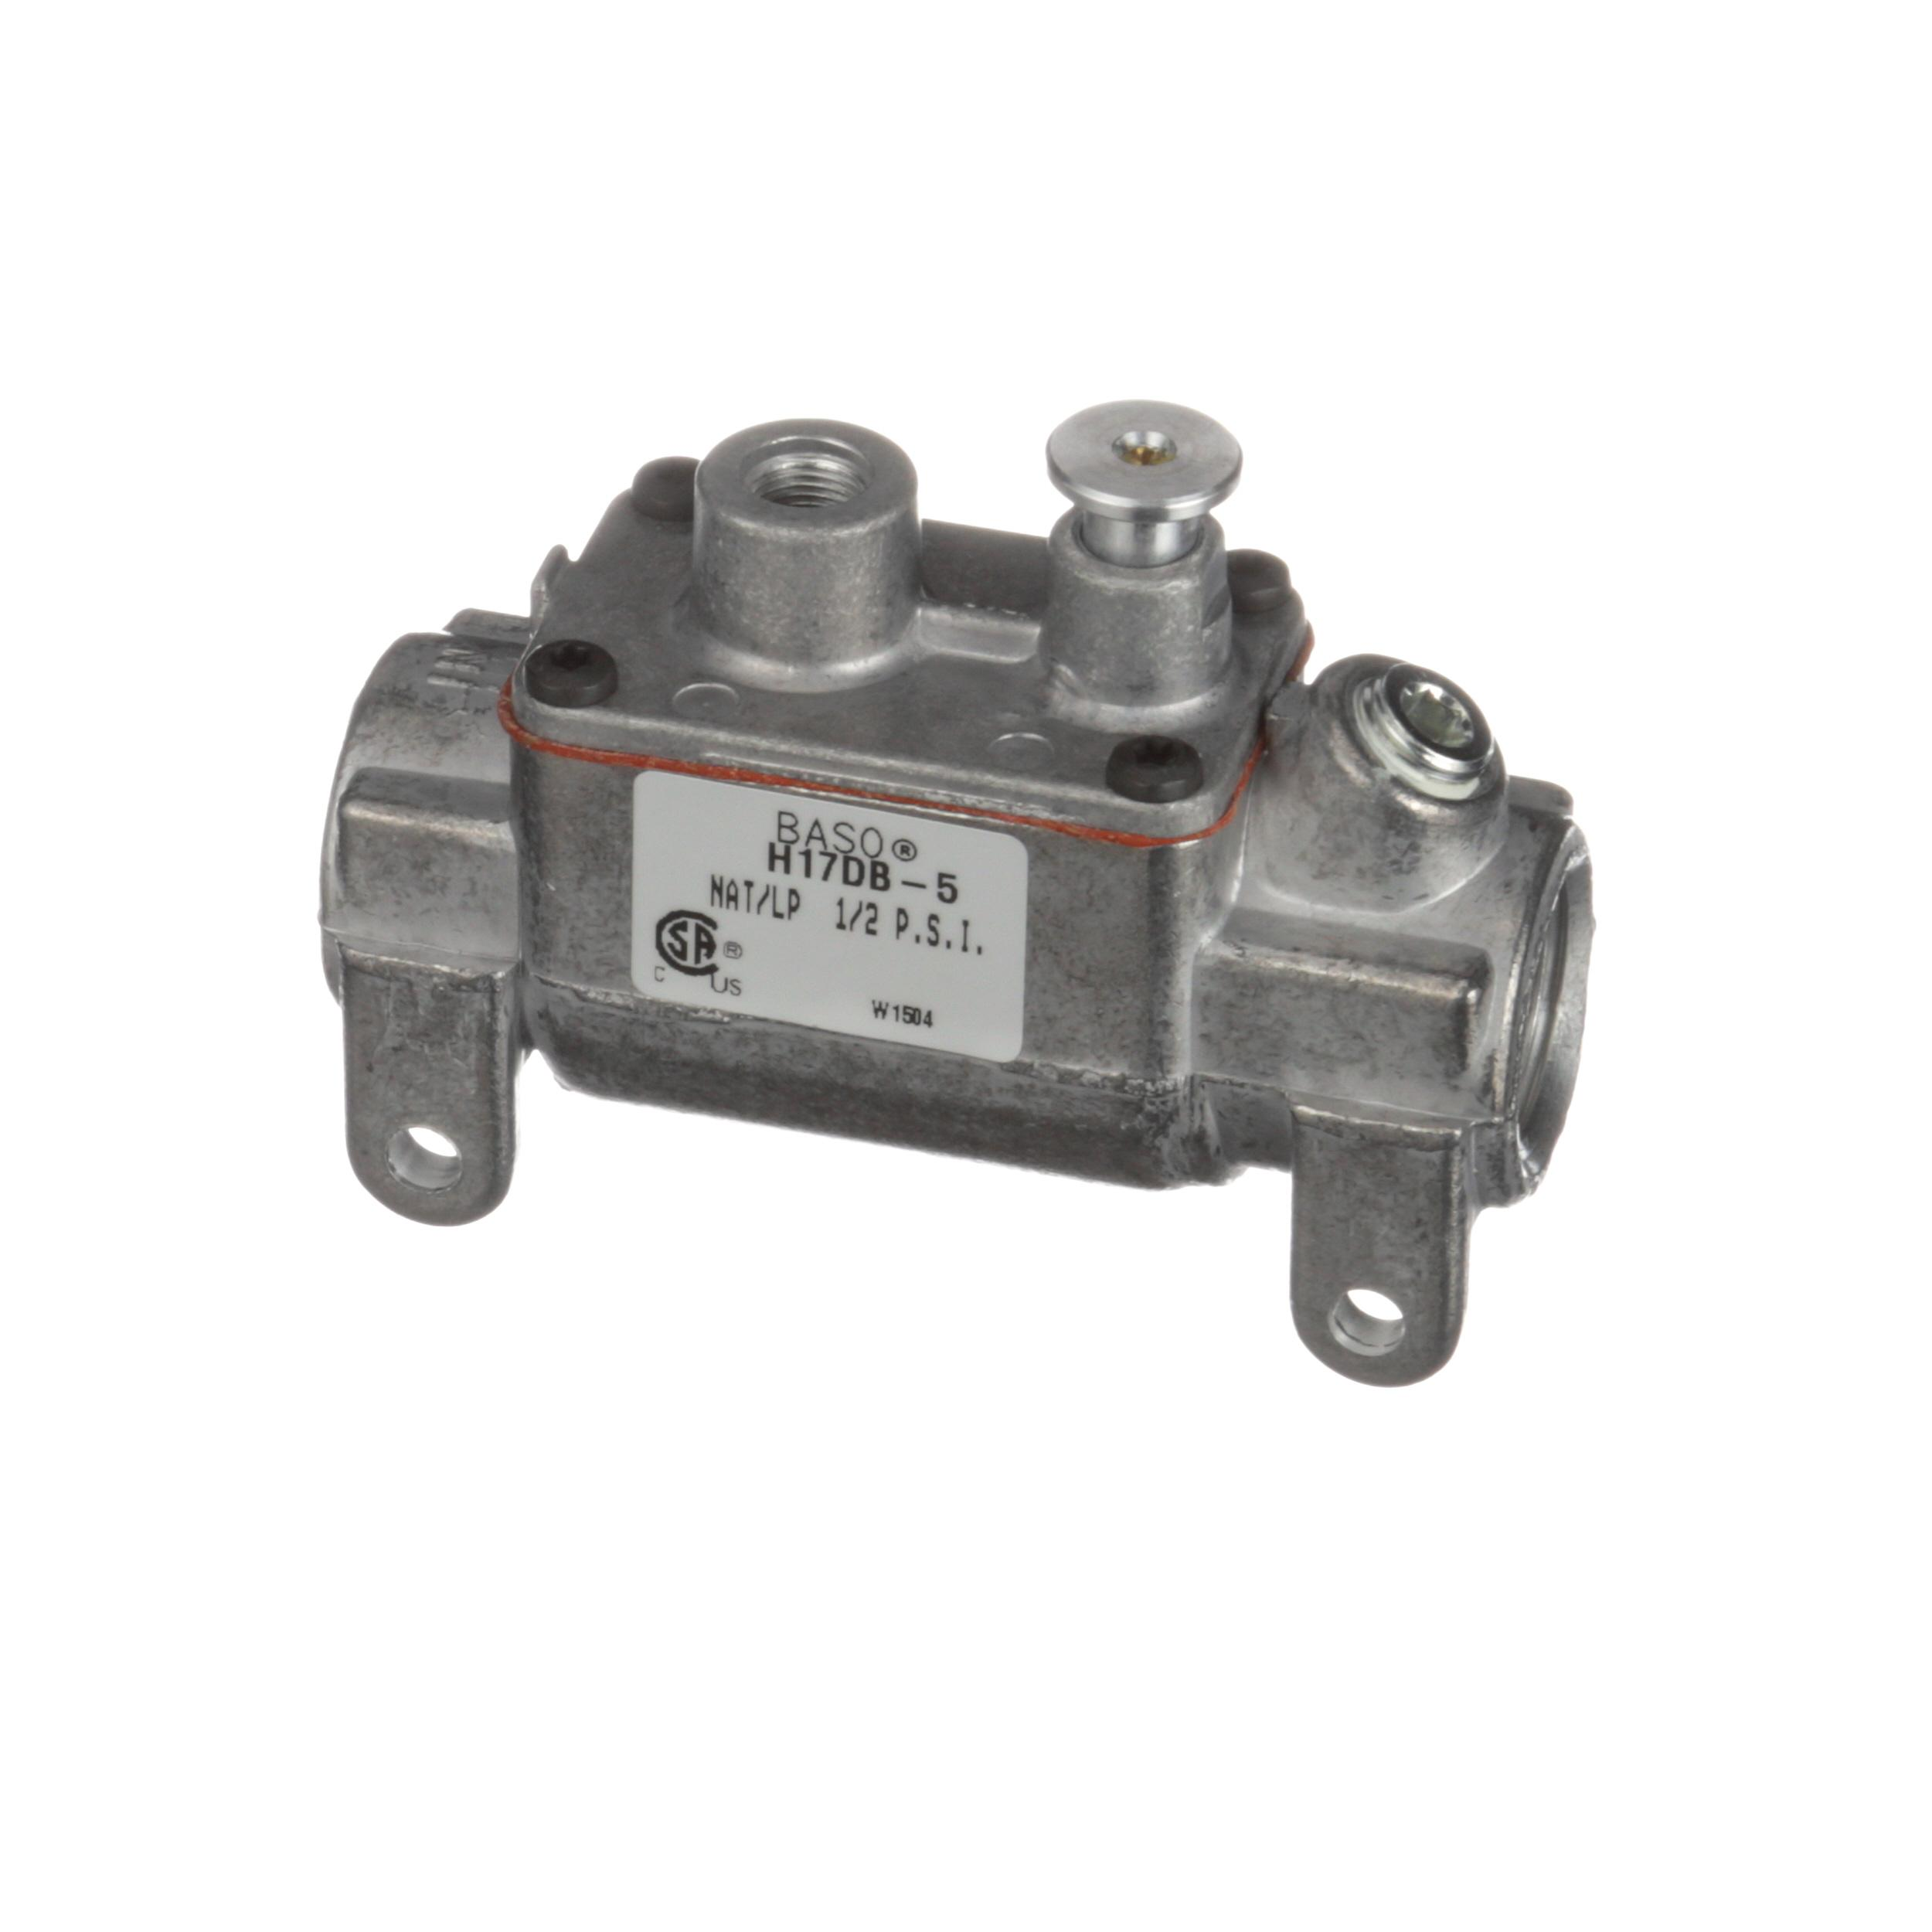 DELFIELD VALVE,BASCO SAFETY